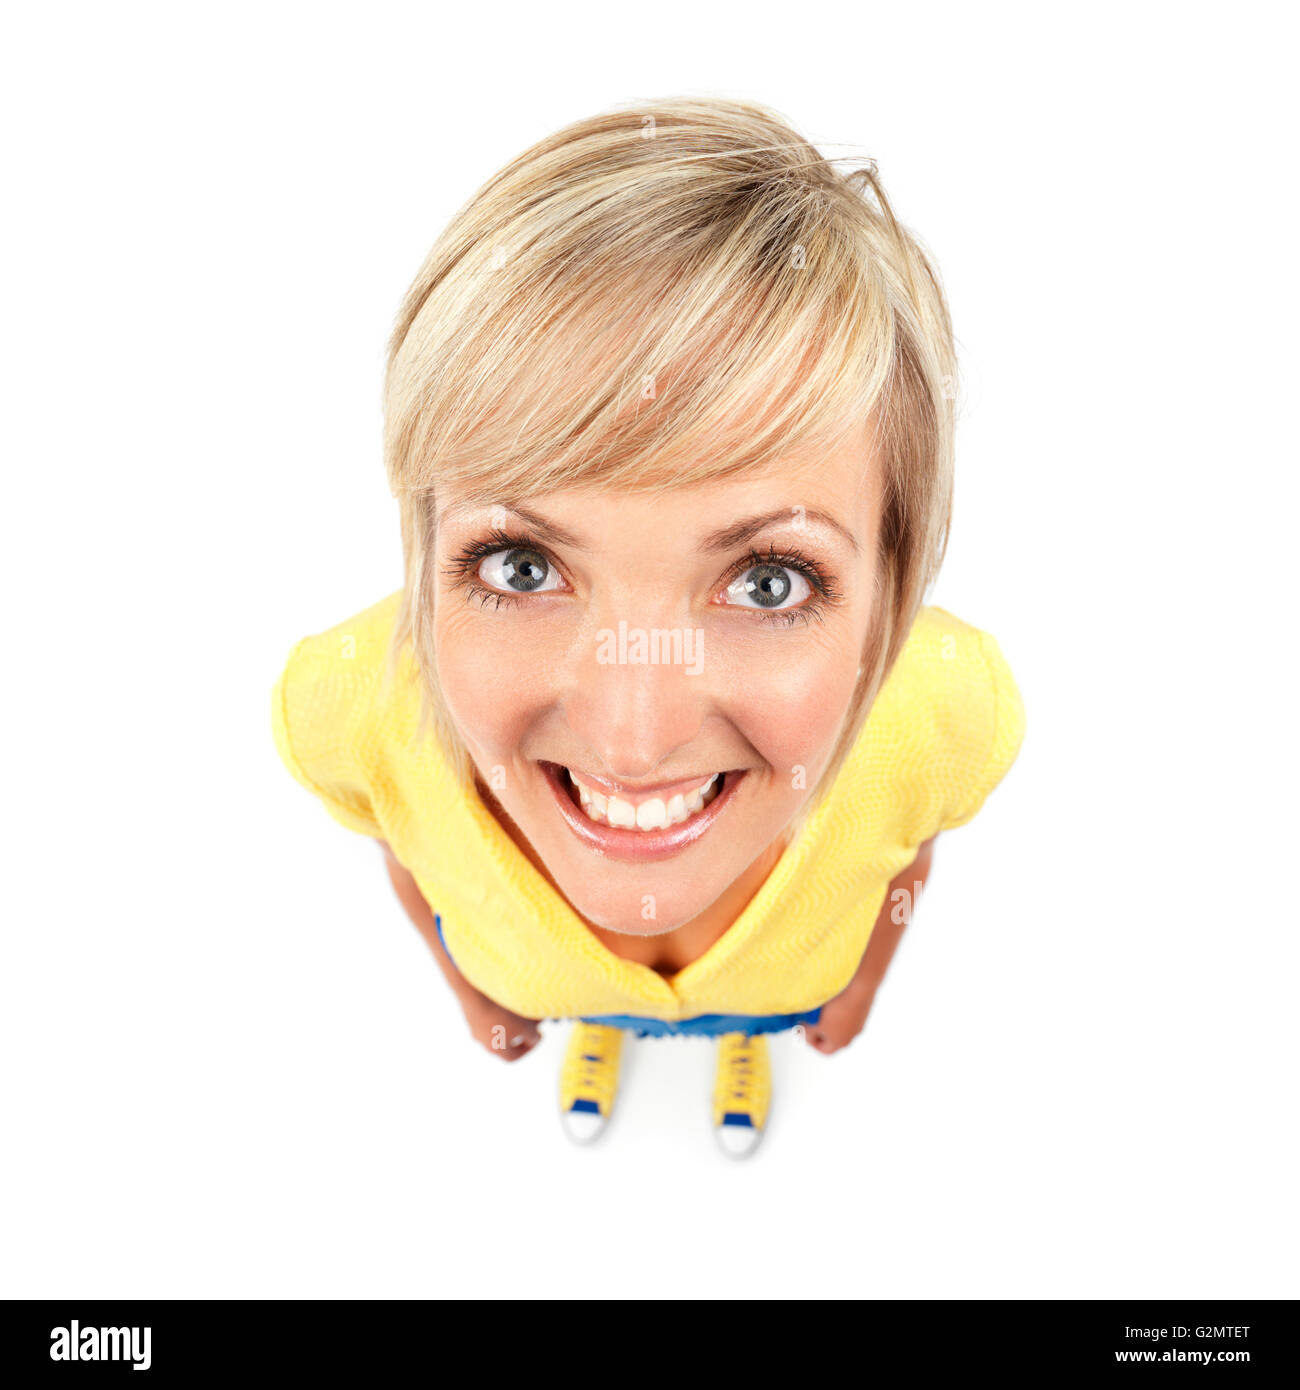 Smiling young woman, comical wide angle view - Stock Image